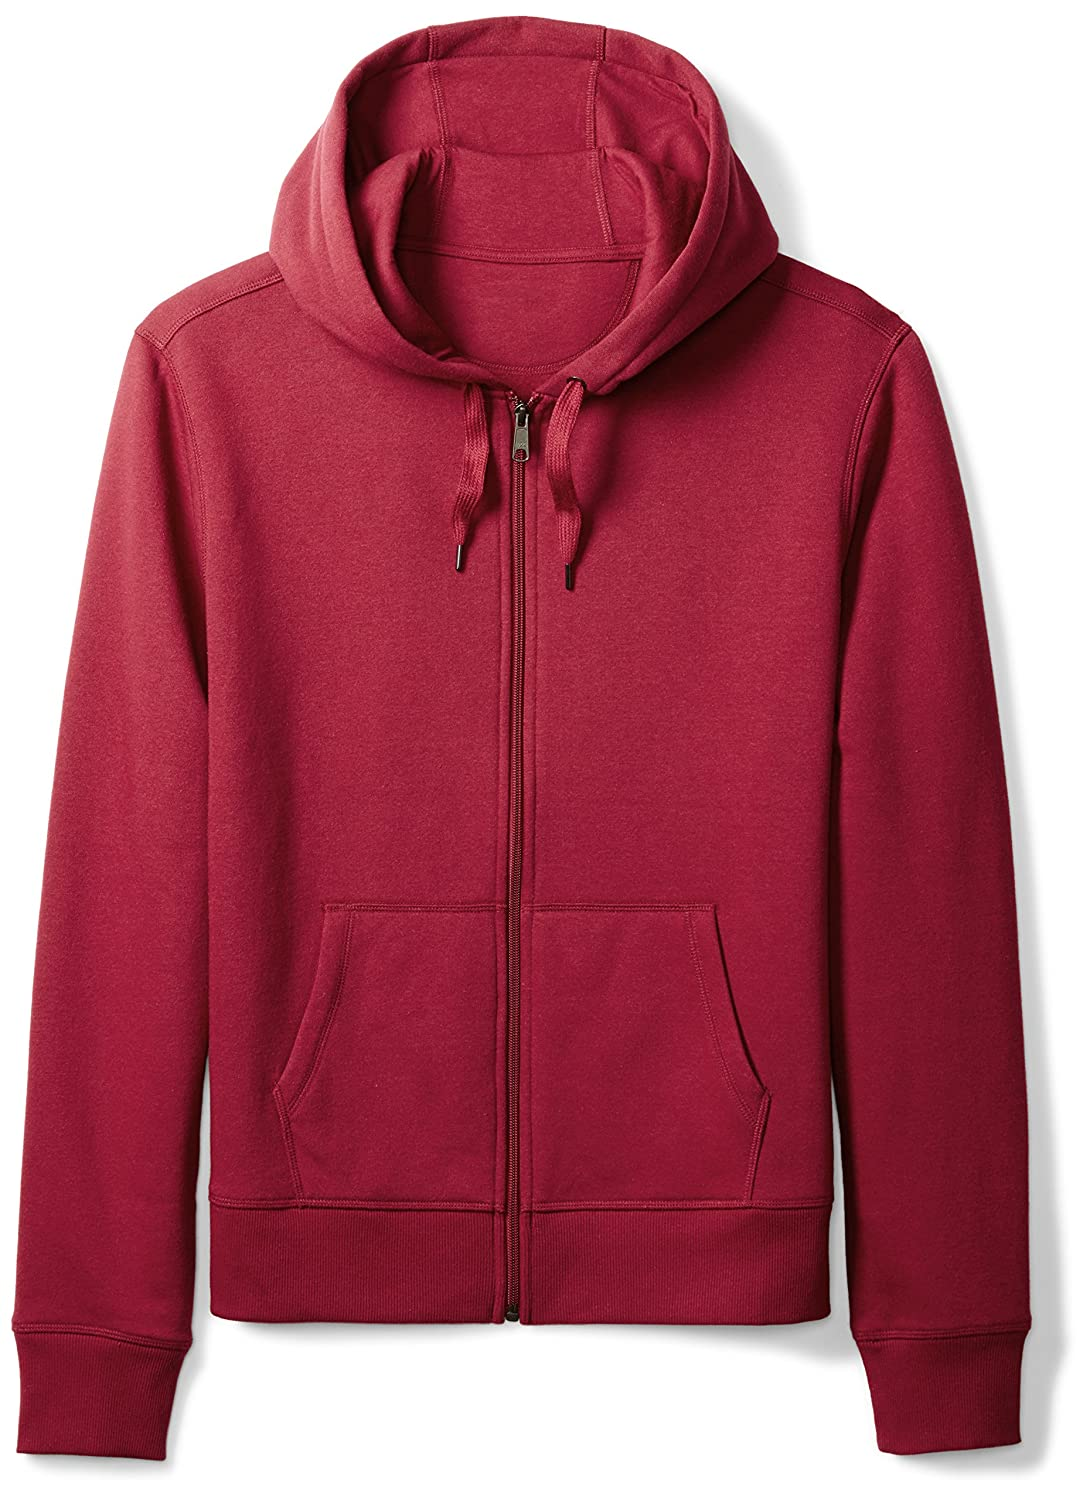 Amazon Essentials Men's Full-Zip Hooded Fleece Sweatshirt F17AE50002